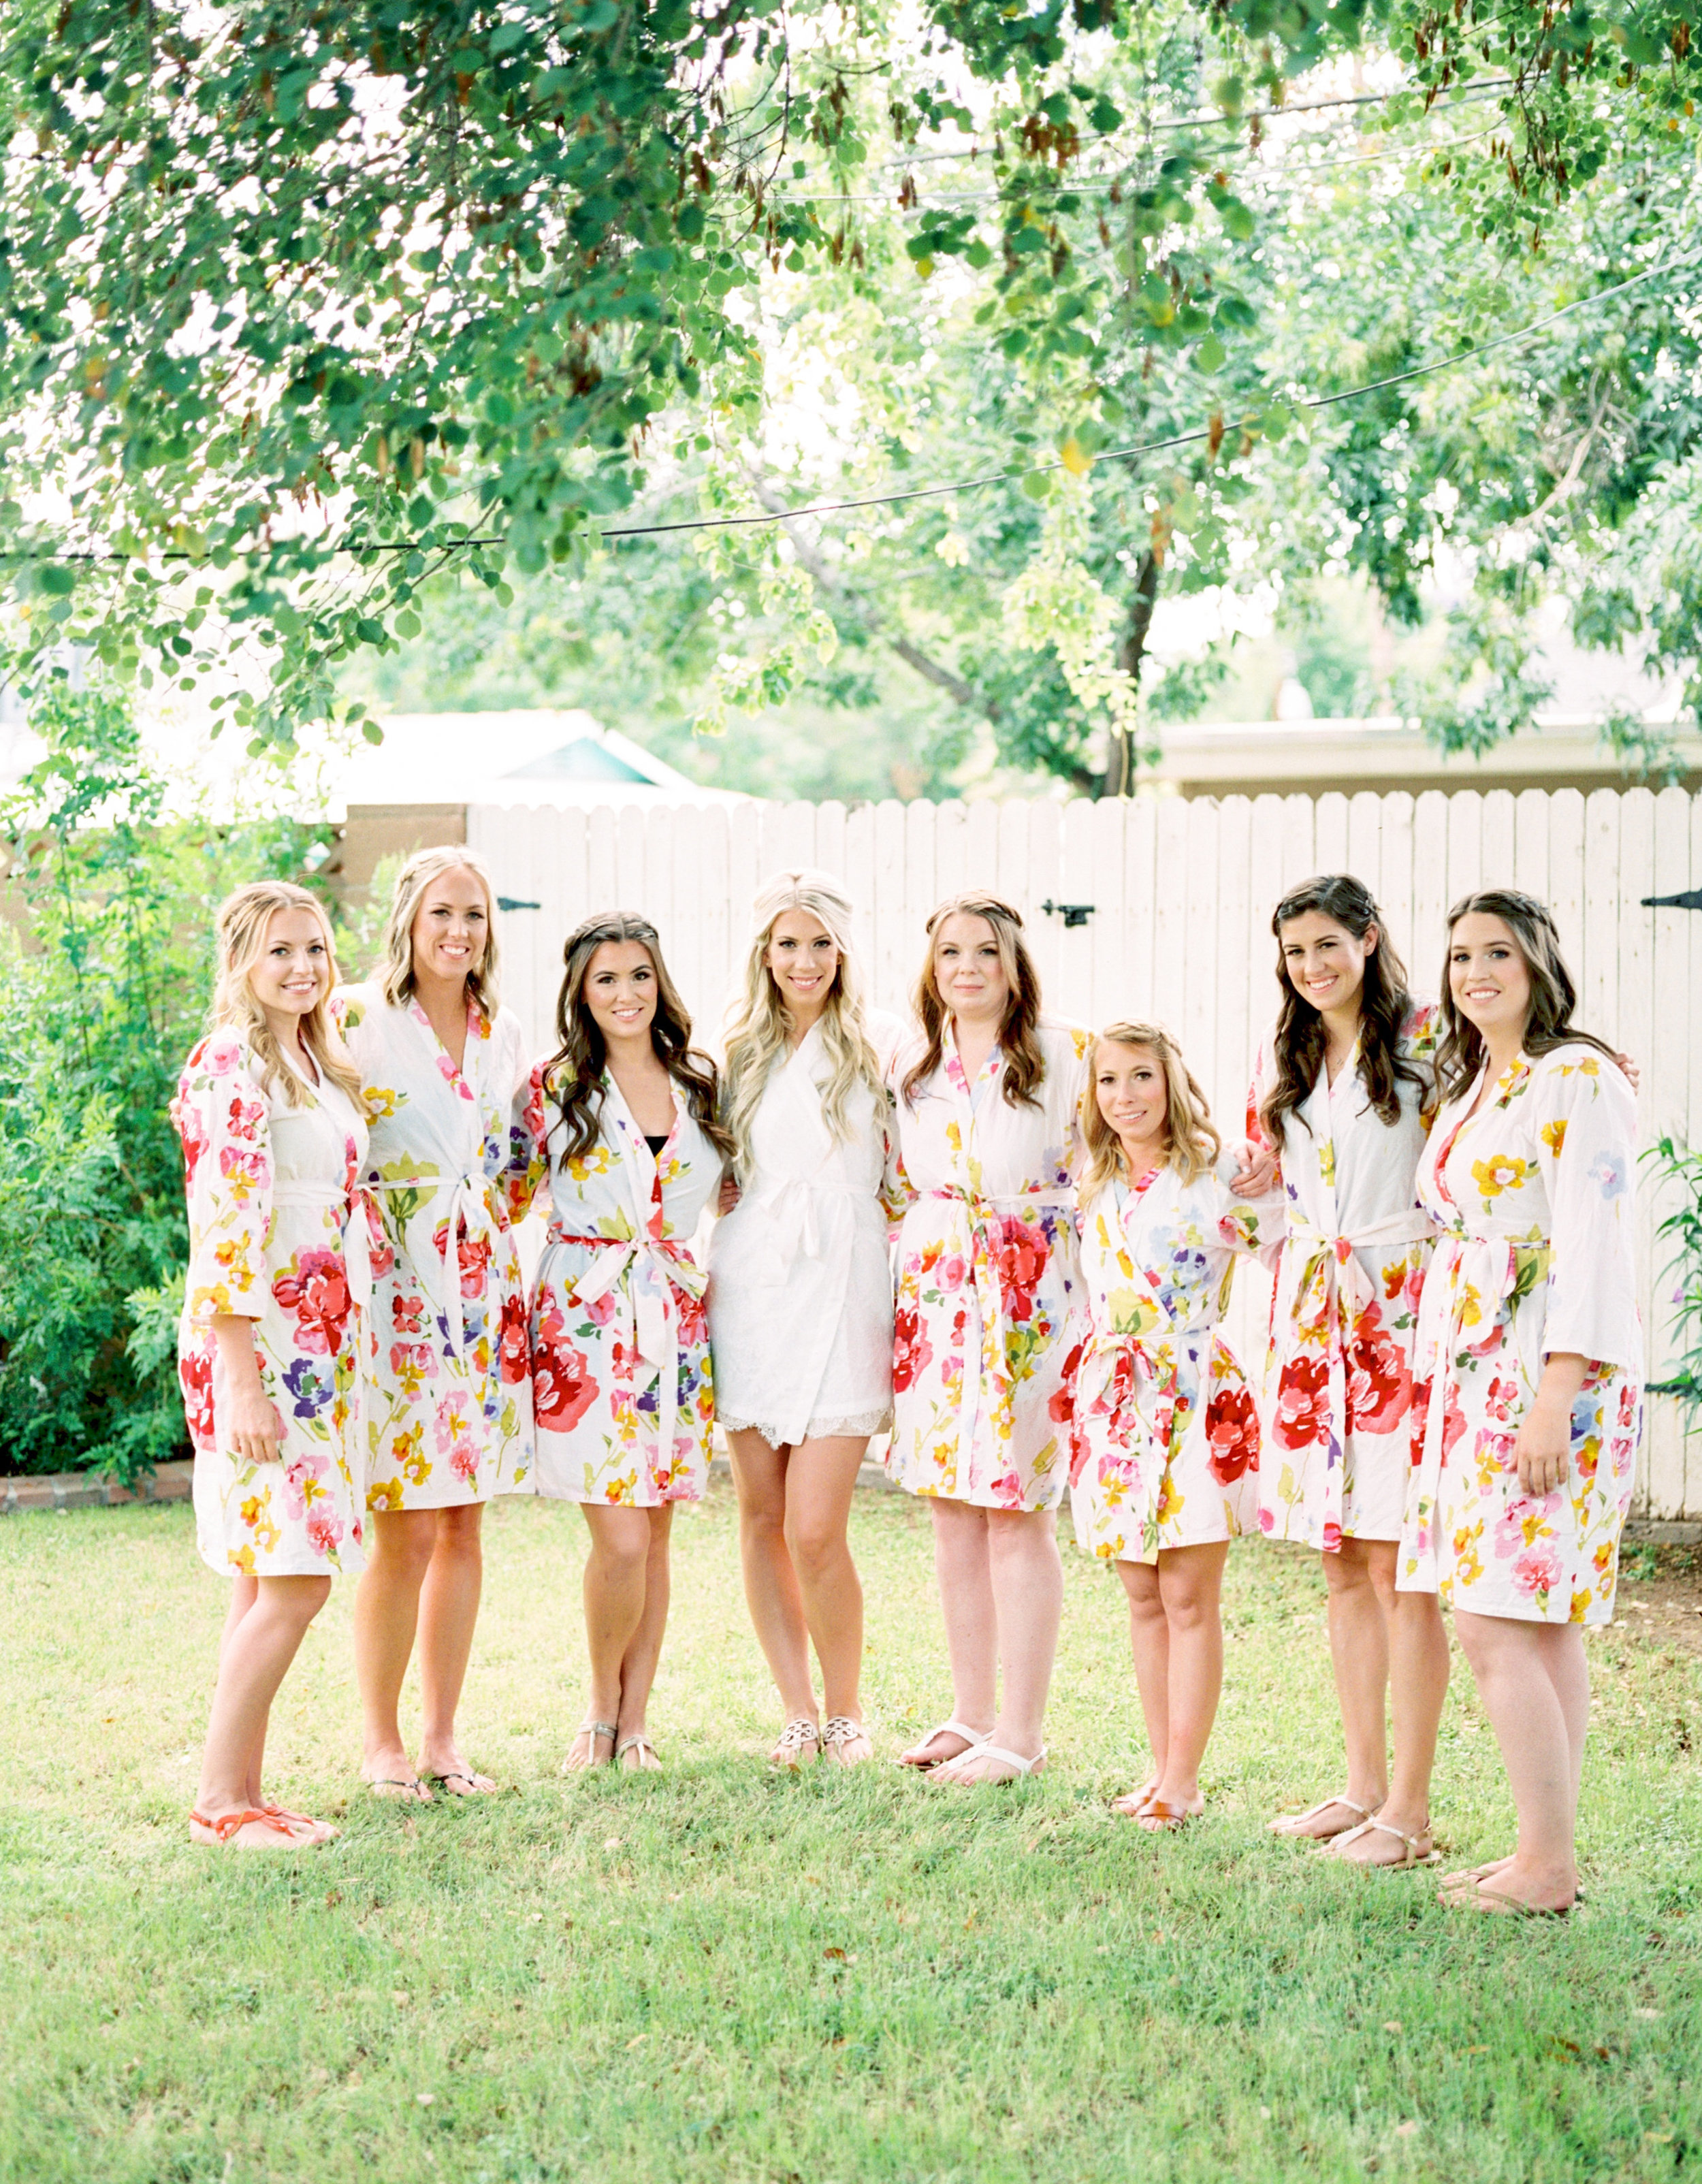 Bridal party photos, floral bath robes, bridesmaids bath robes